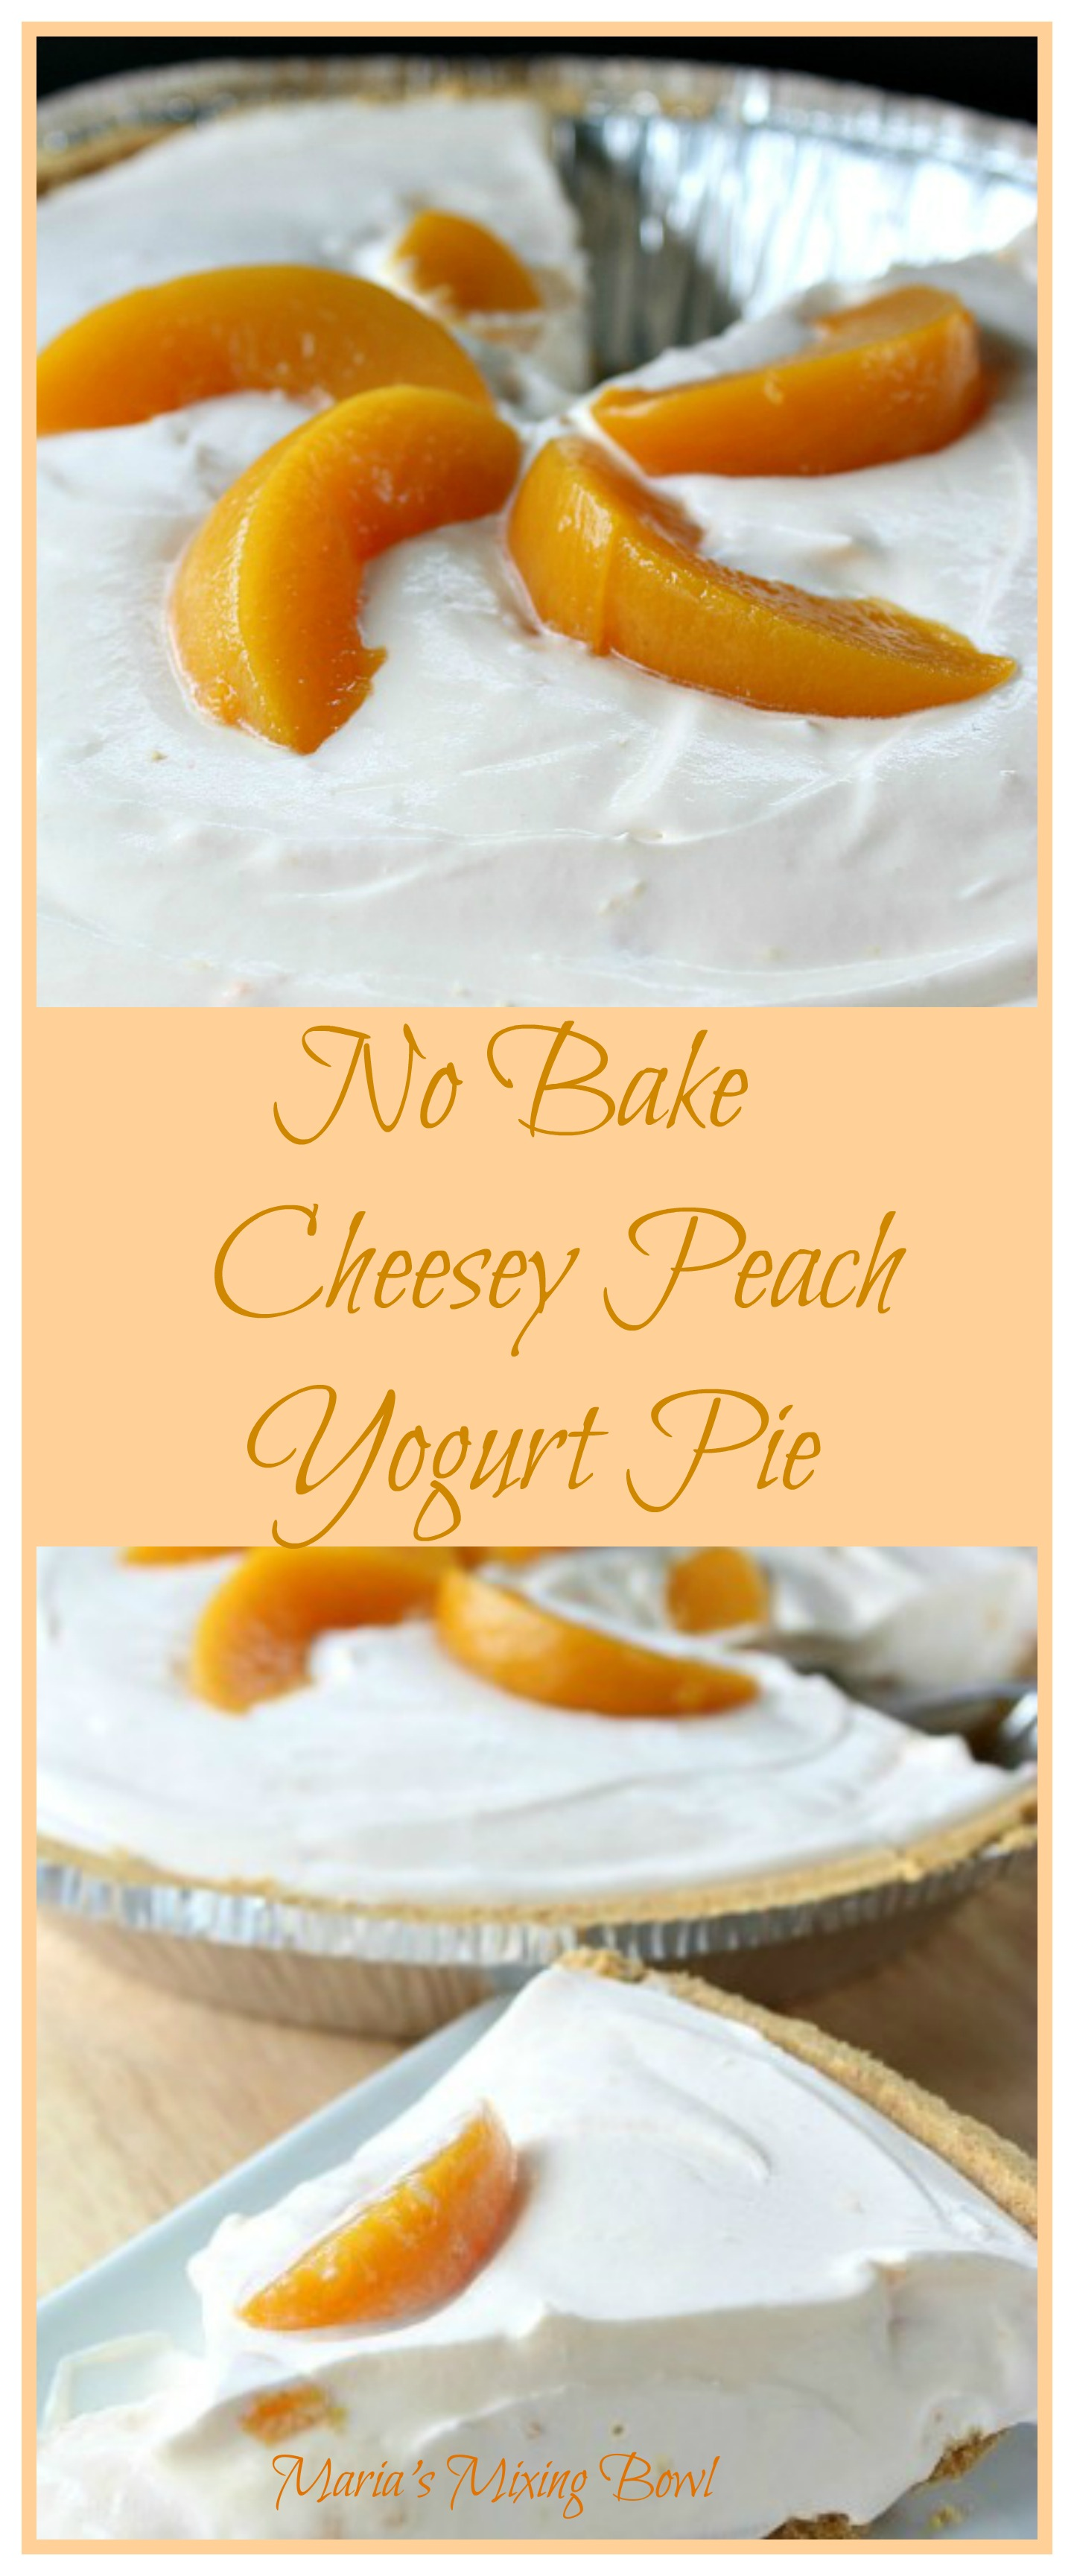 No Bake Cheesy Peach Yogurt Pie -  This refreshingly easy No Bake Cheesy Peach Yogurt Pie can be prepared using just a few ingredients. It's so quick and easy not to mention delicious. My kind of pie!!